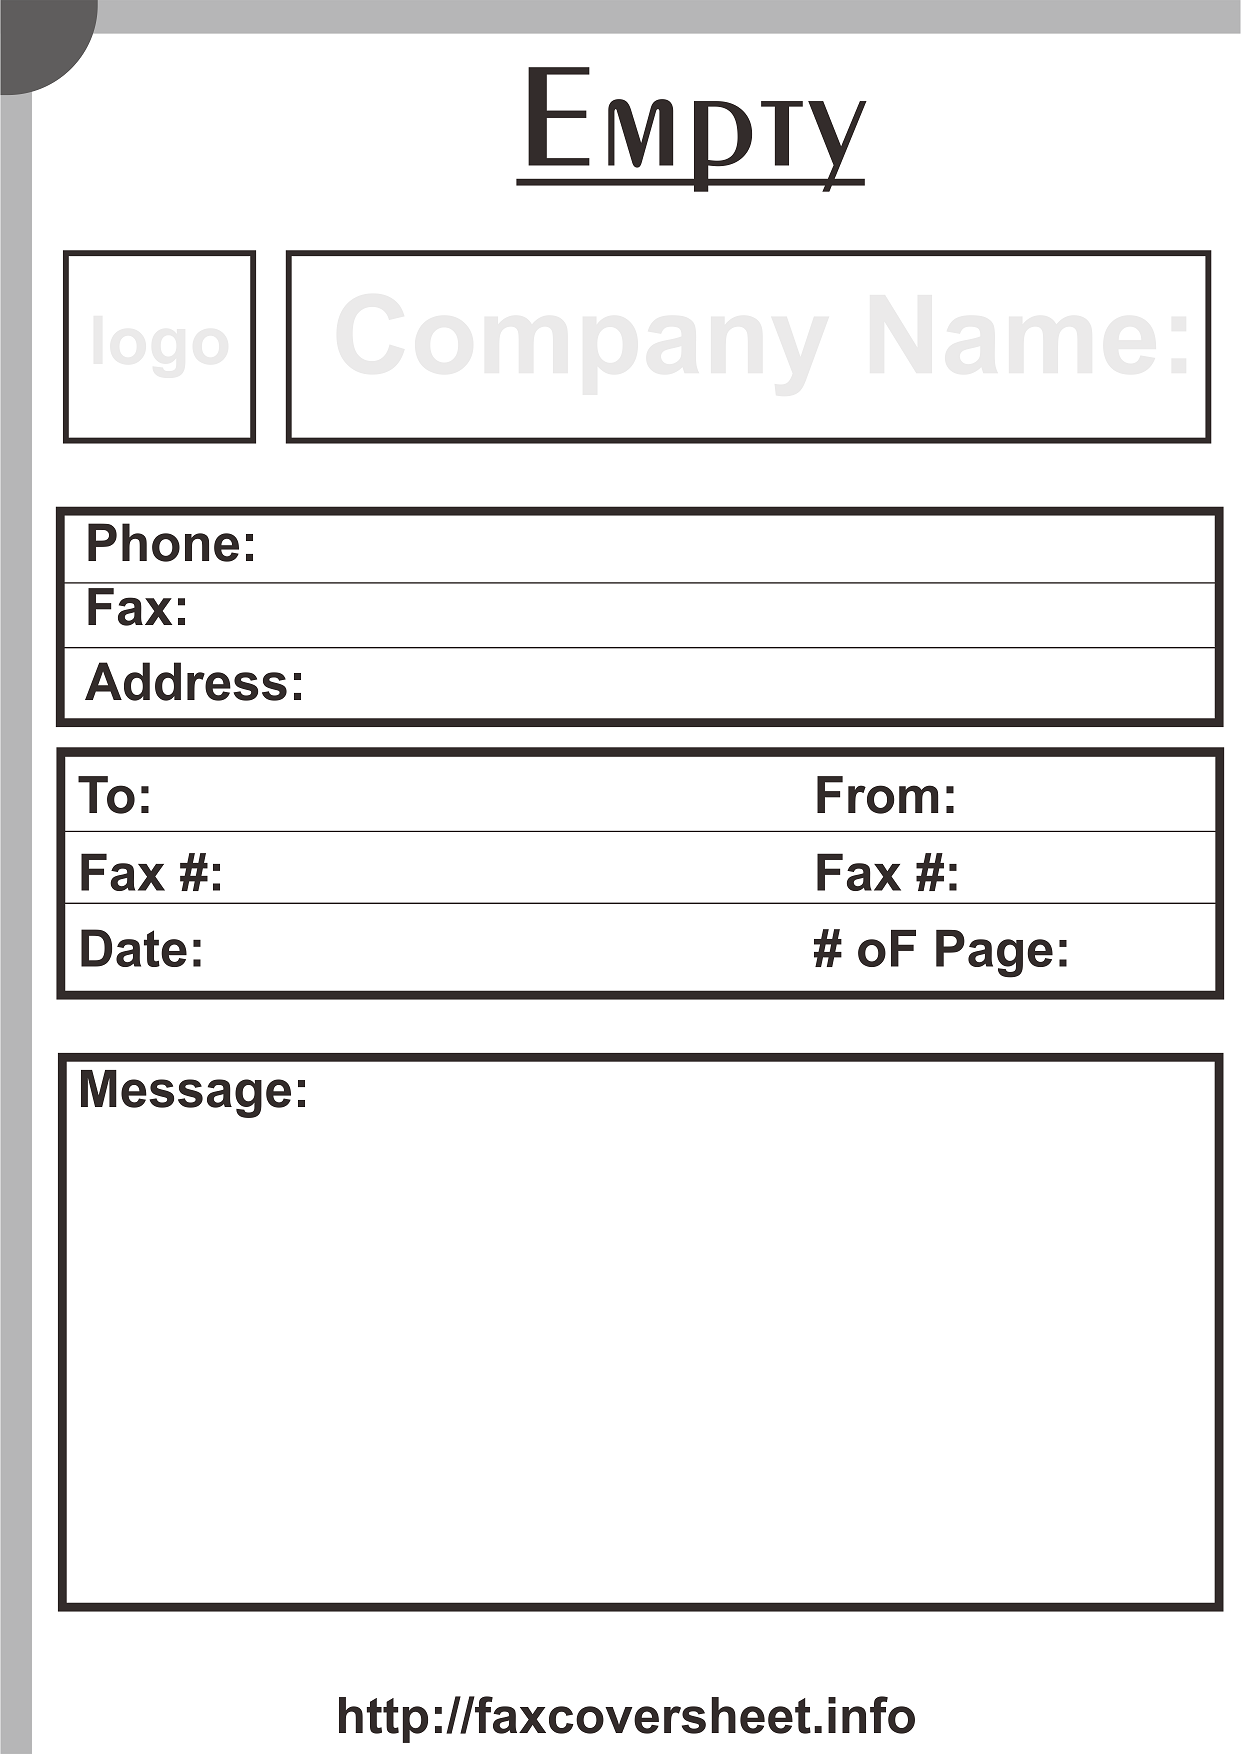 Empty Logo Fax Cover Sheet